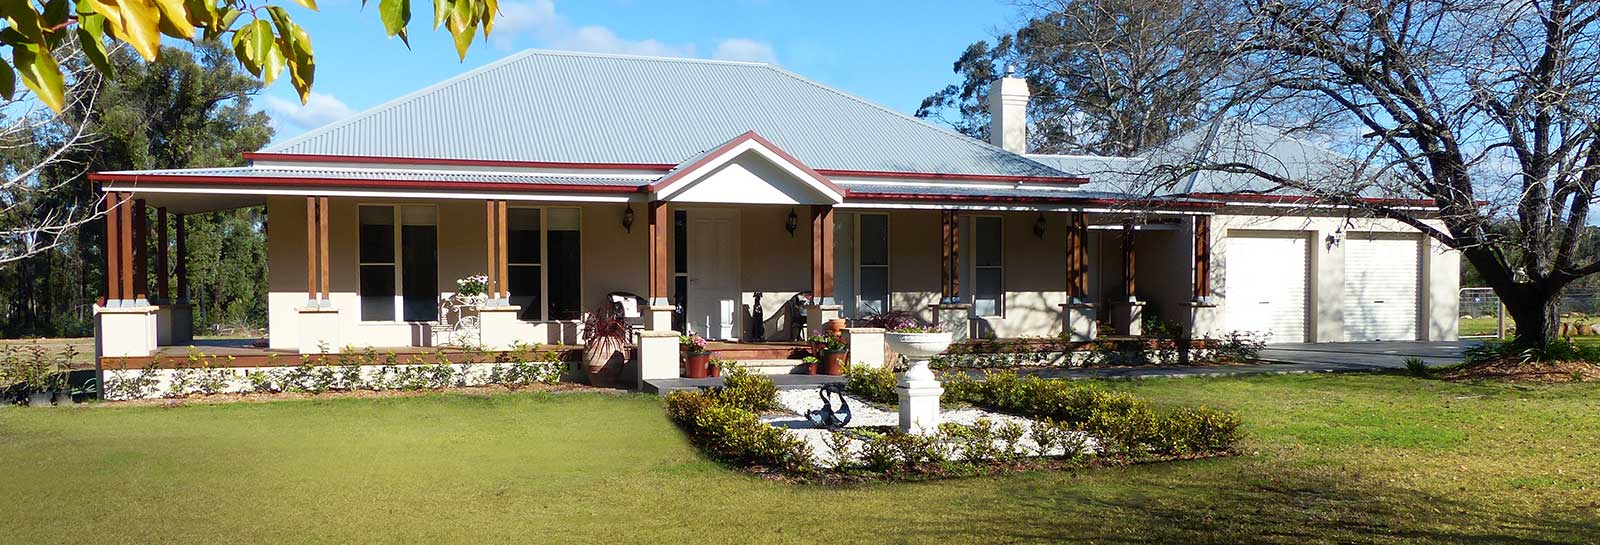 Country style kit homes melbourne